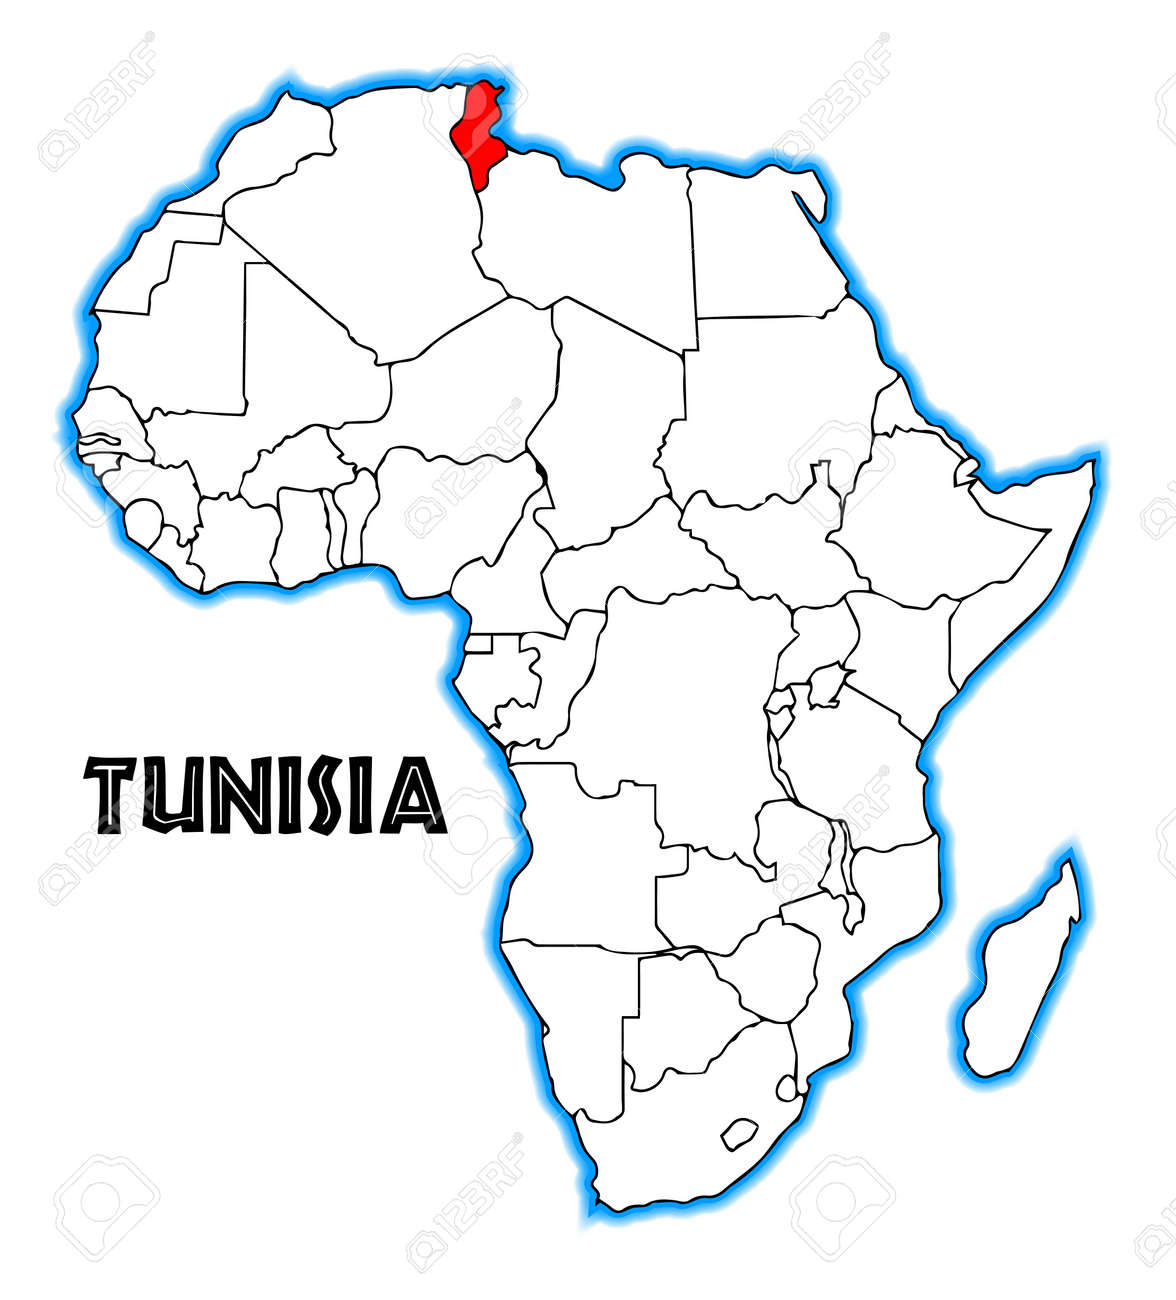 Tunisia Outline Inset Into A Map Of Africa Over A White Background ...